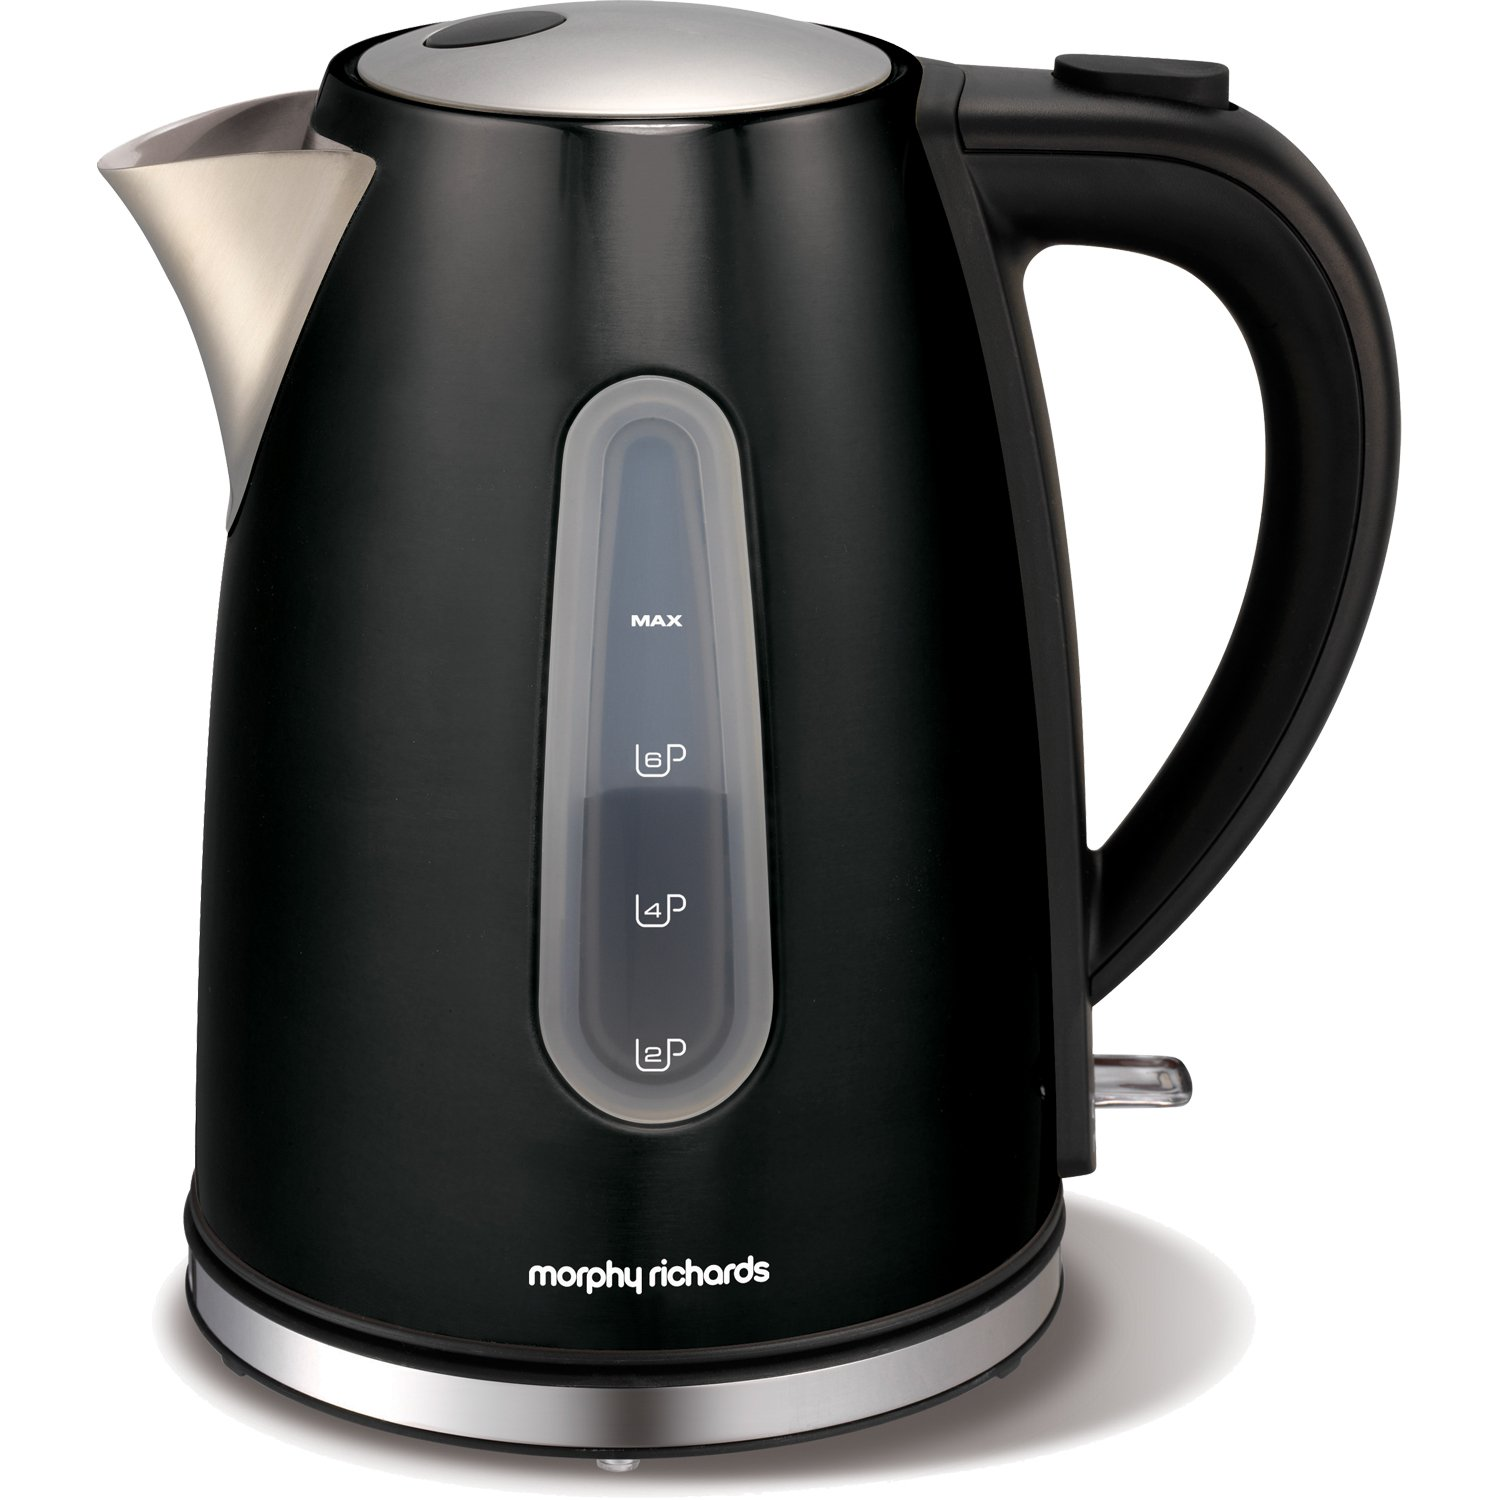 5l accents range only electricals co uk small kitchen appliances - Morphy Richards Accents Black 1 5l Jug Kettle And 2 Slice Toaster Kicthen Set Amazon Co Uk Kitchen Home